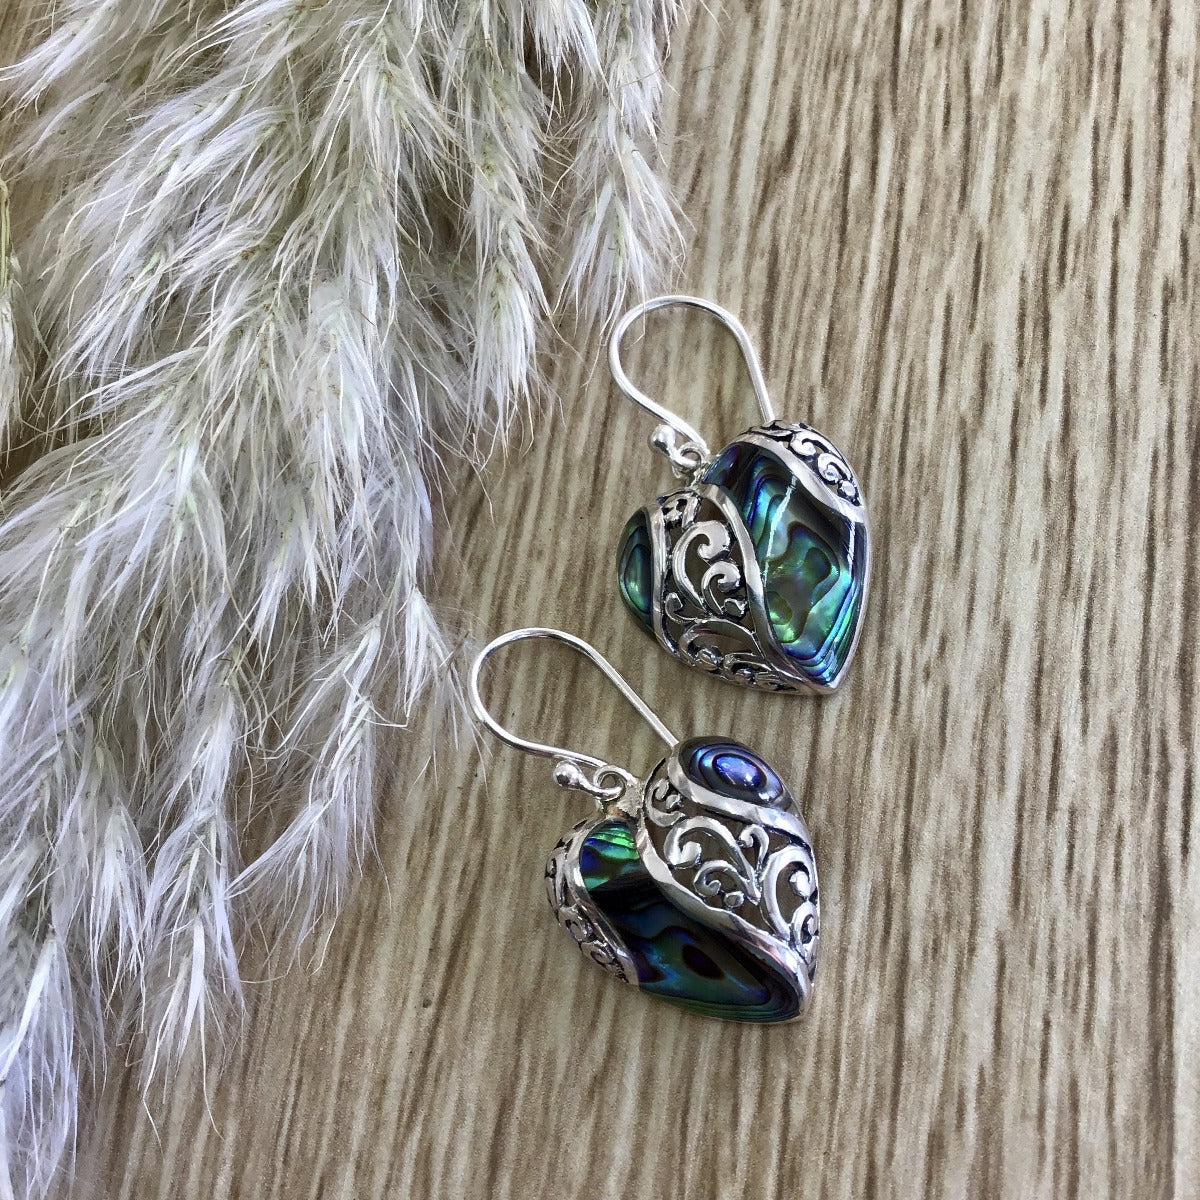 jade kiwi kaikoura sterling silver heart earrings with paua shell and filigree